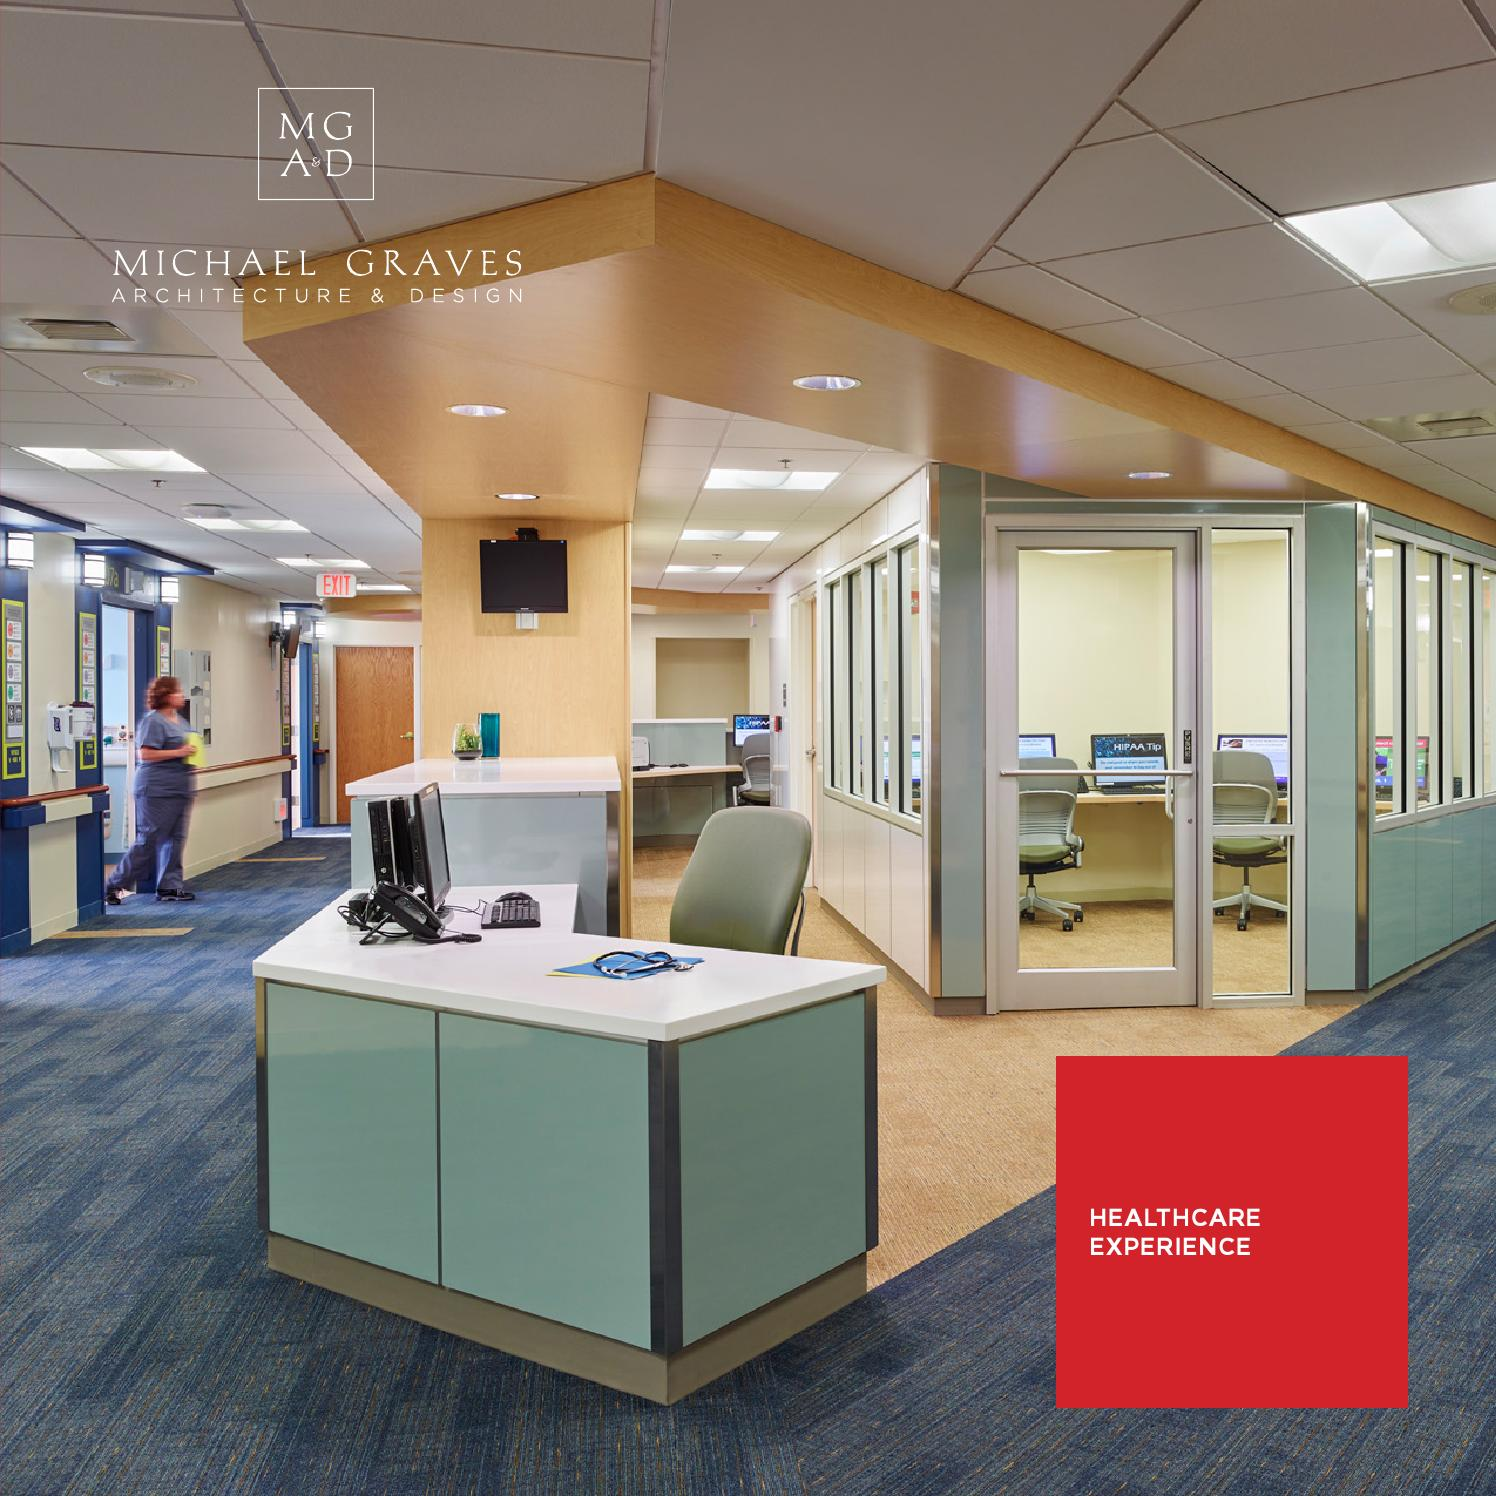 Mgad Healthcare Experience Book By Michael Graves Architecture